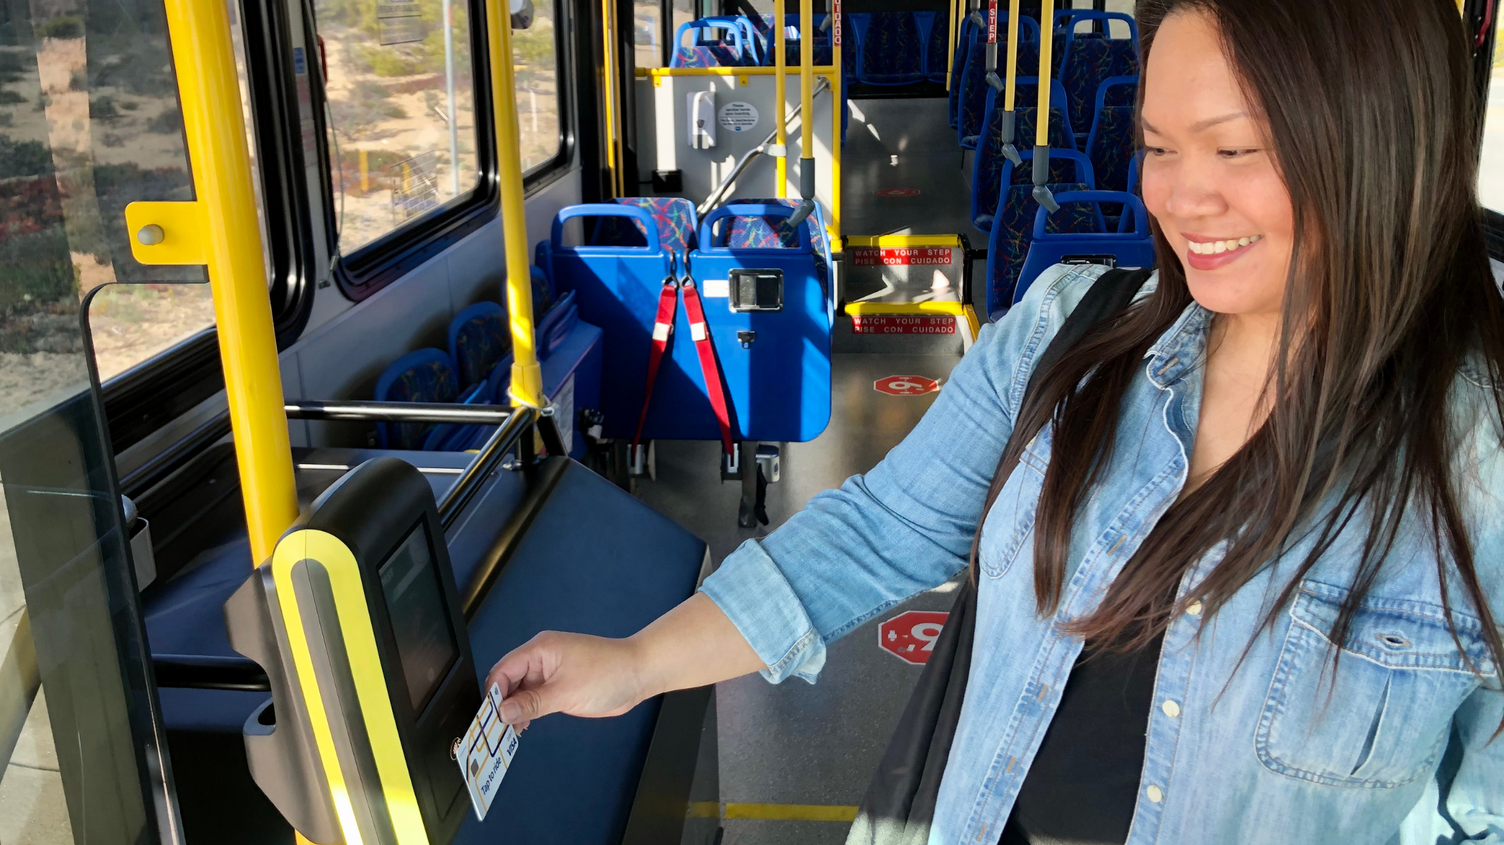 Rider onboard Monterey Salinas Transit bus using the new contactless payment system